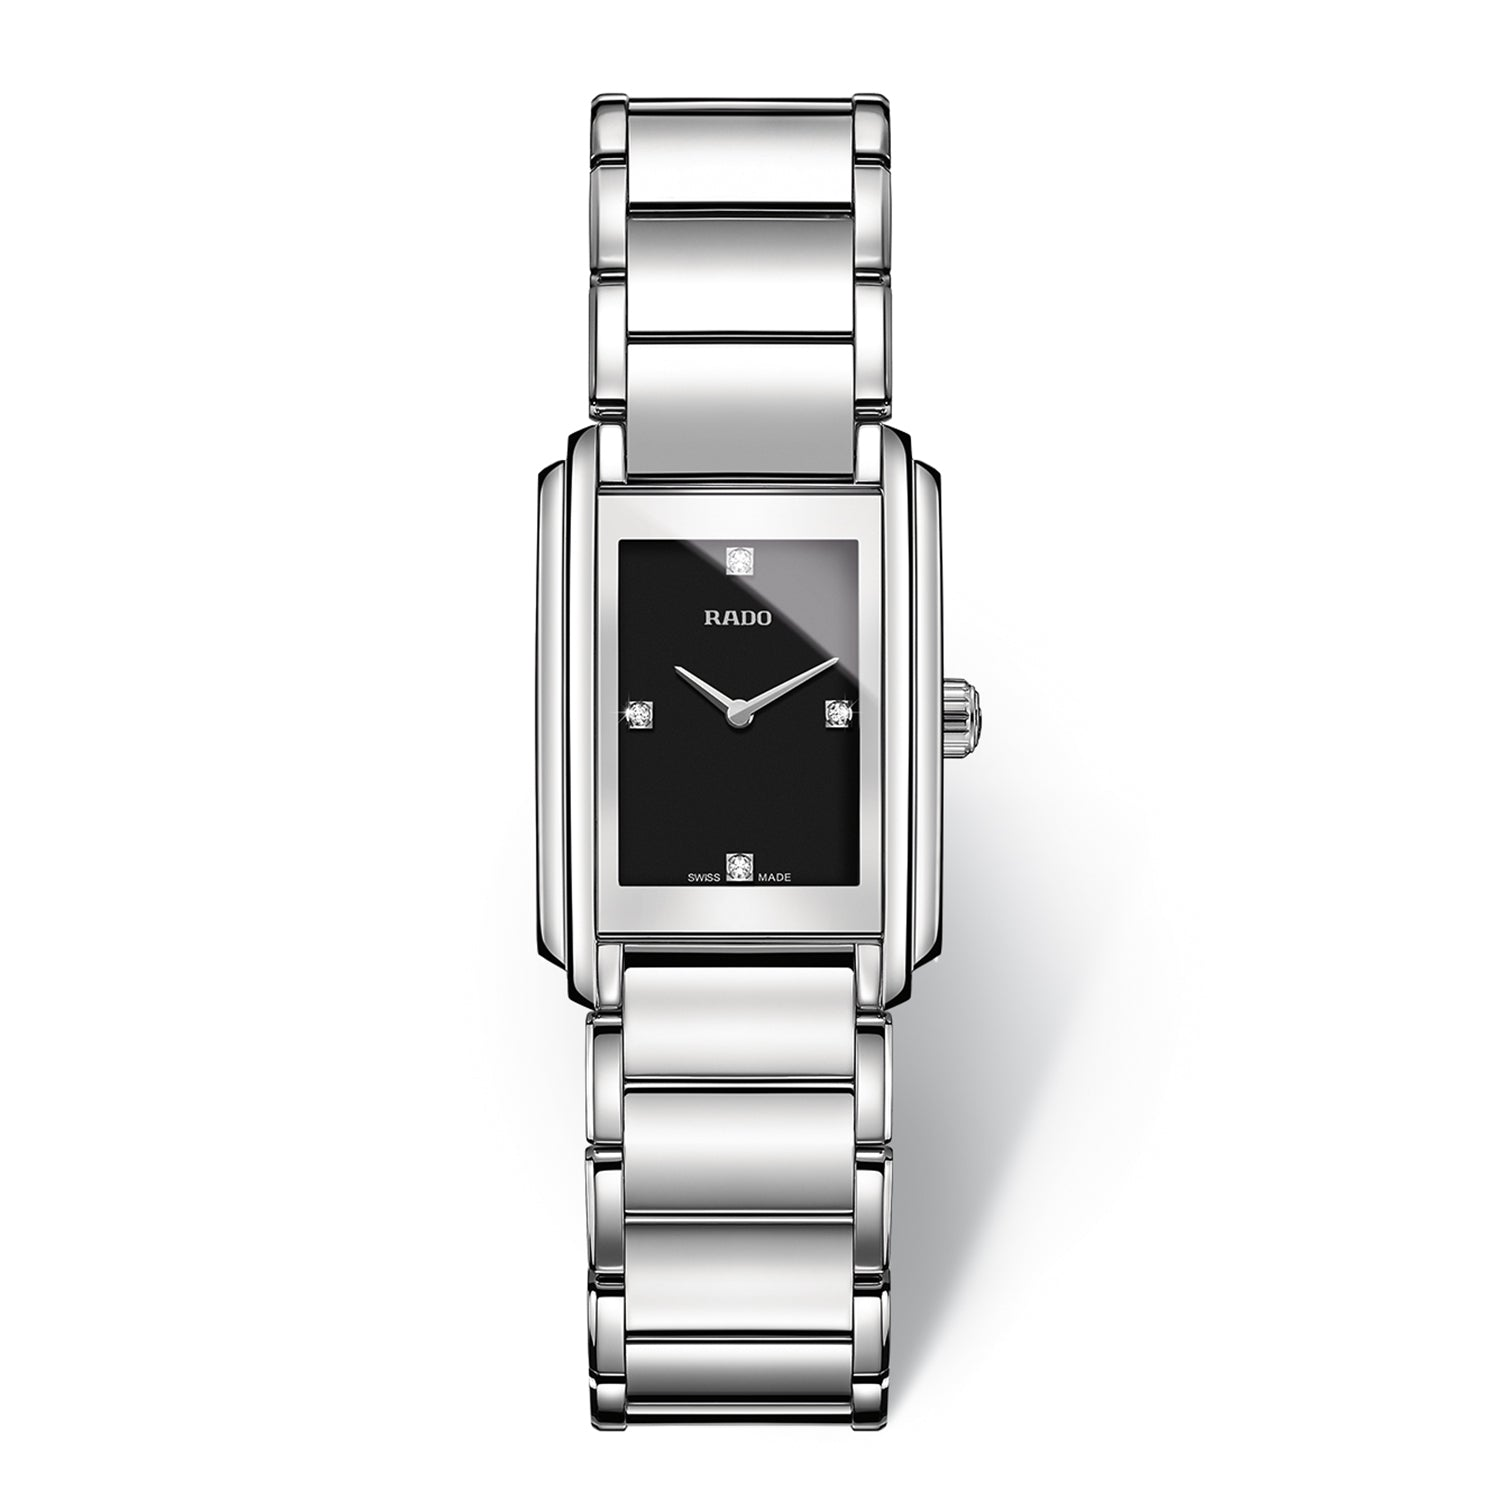 Rado Integral S watch, Stainless steel bracelet with Black dial